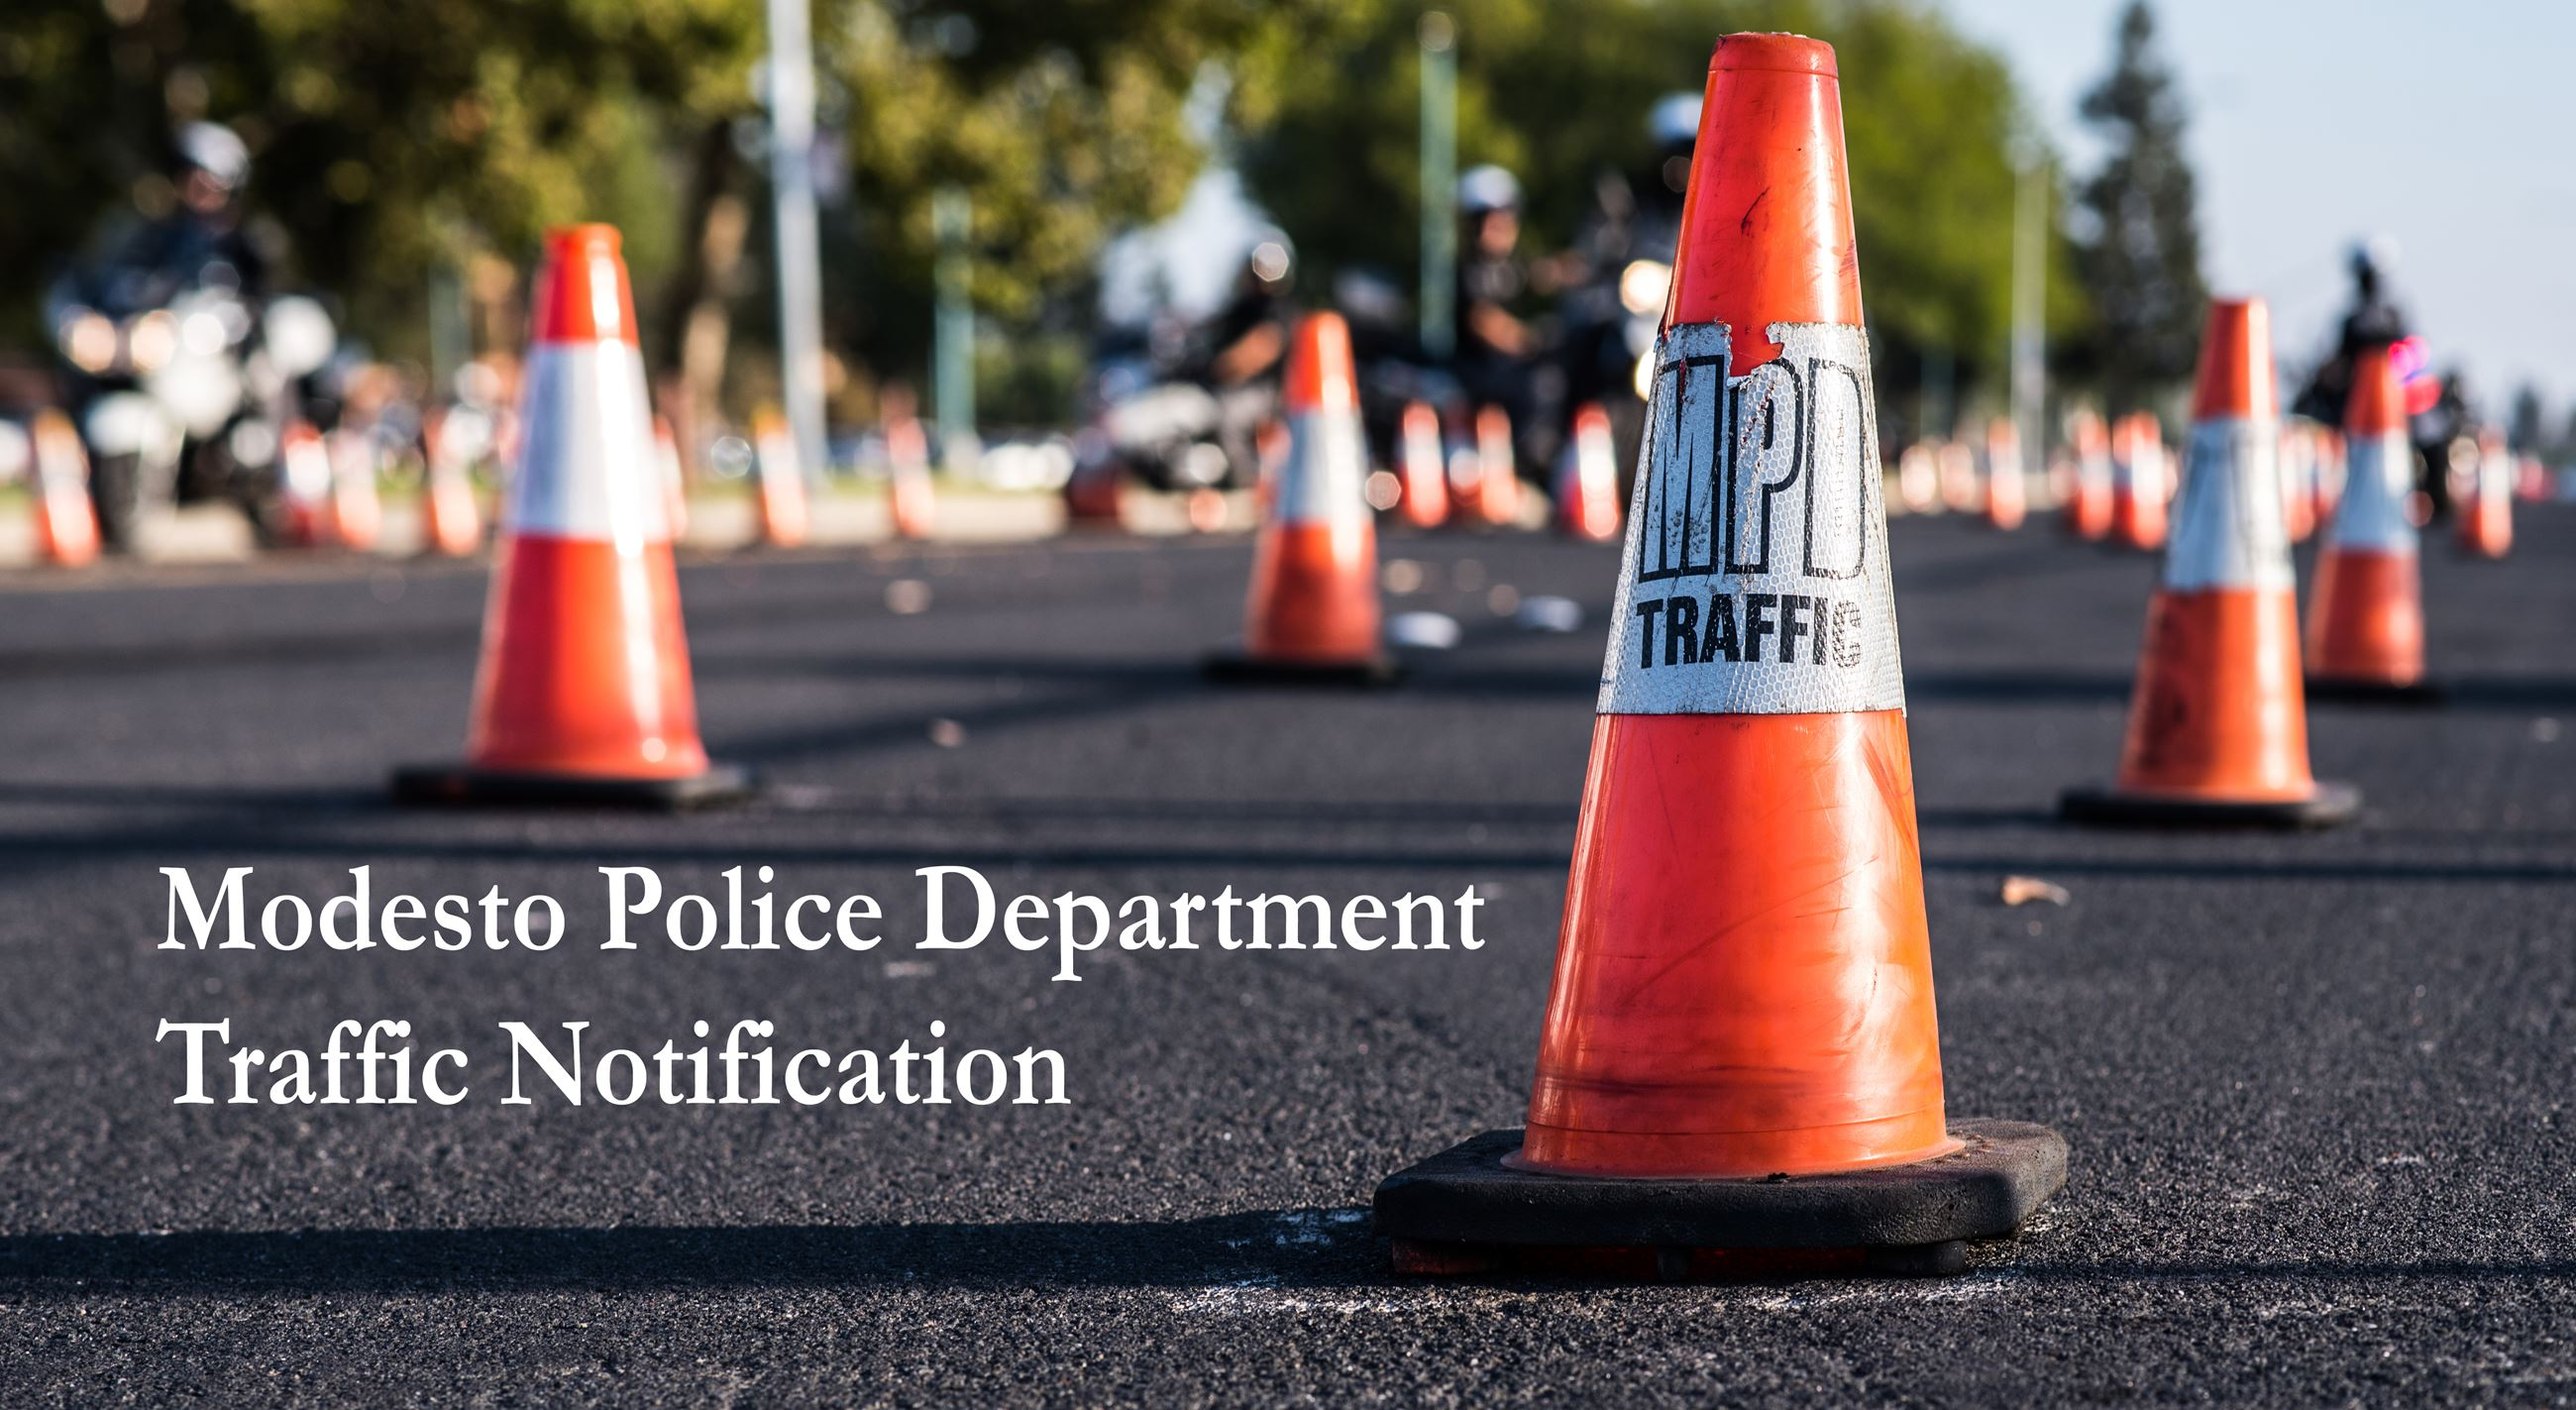 MPD Traffic Notification